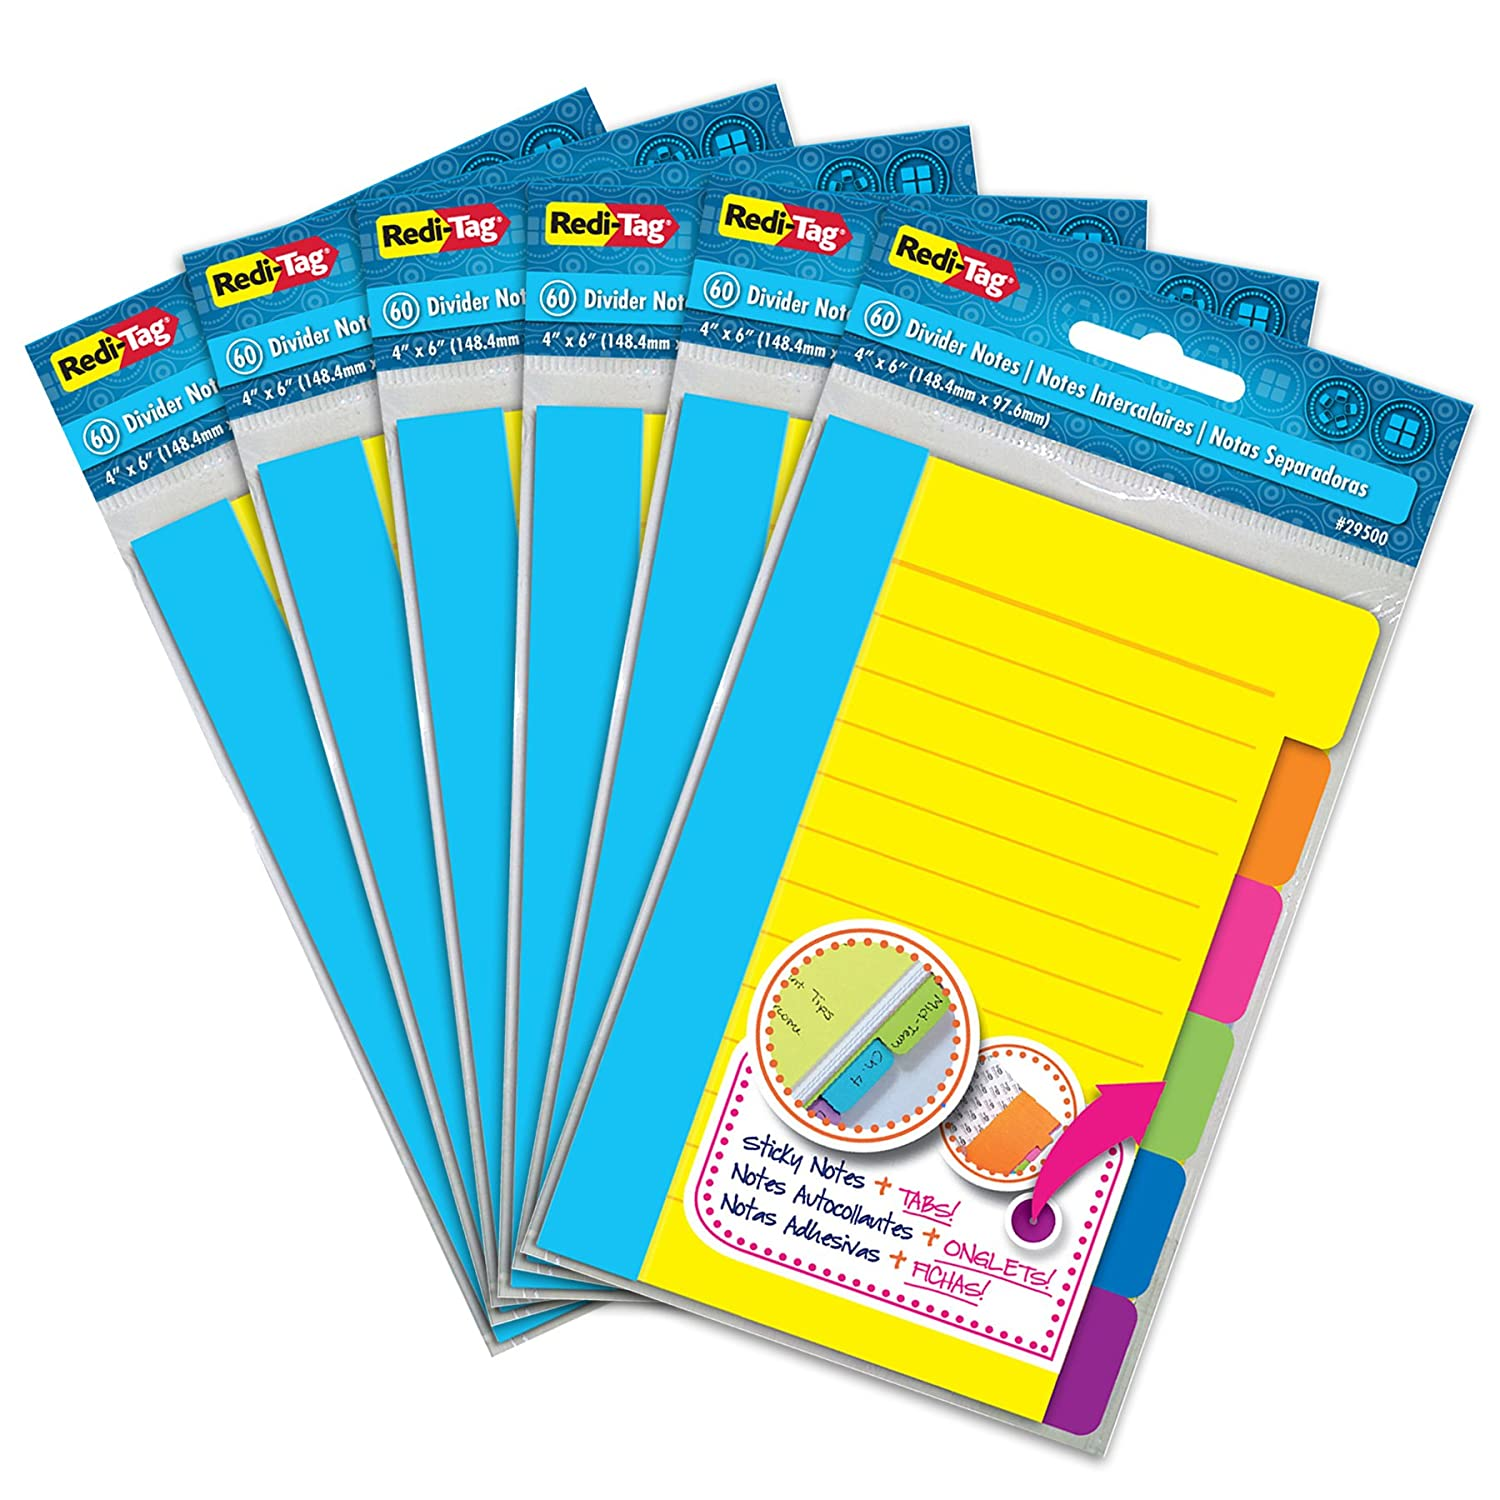 Redi-Tag Divider Sticky Notes, Tabbed Self-Stick Lined Note Pad, 60 Ruled Notes per Pack, 4 x 6 Inches, Assorted Neon Colors, 6 Pack (10291)